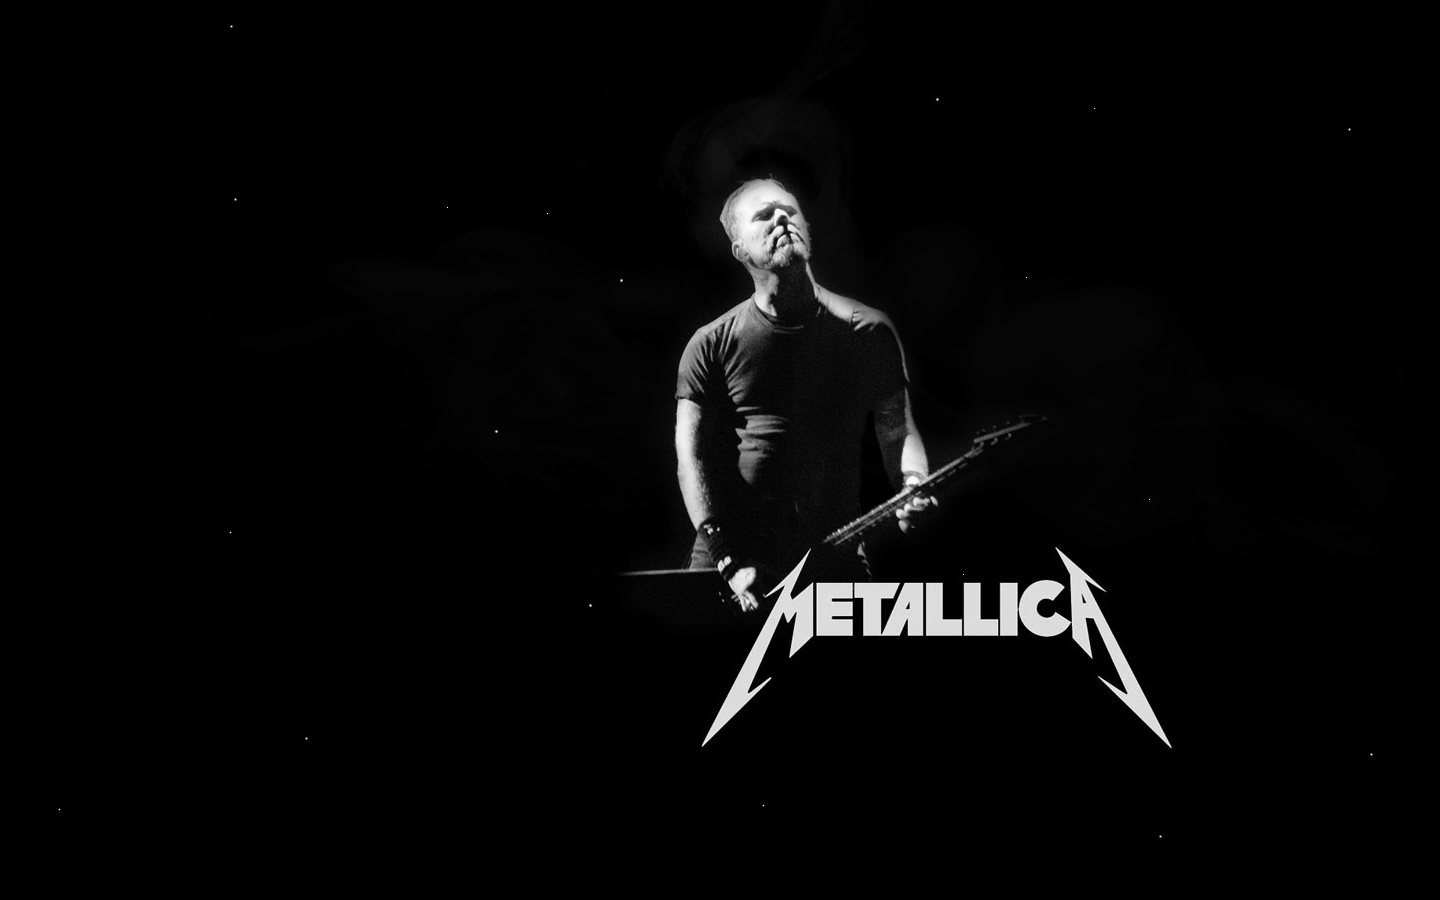 Metallica HD image